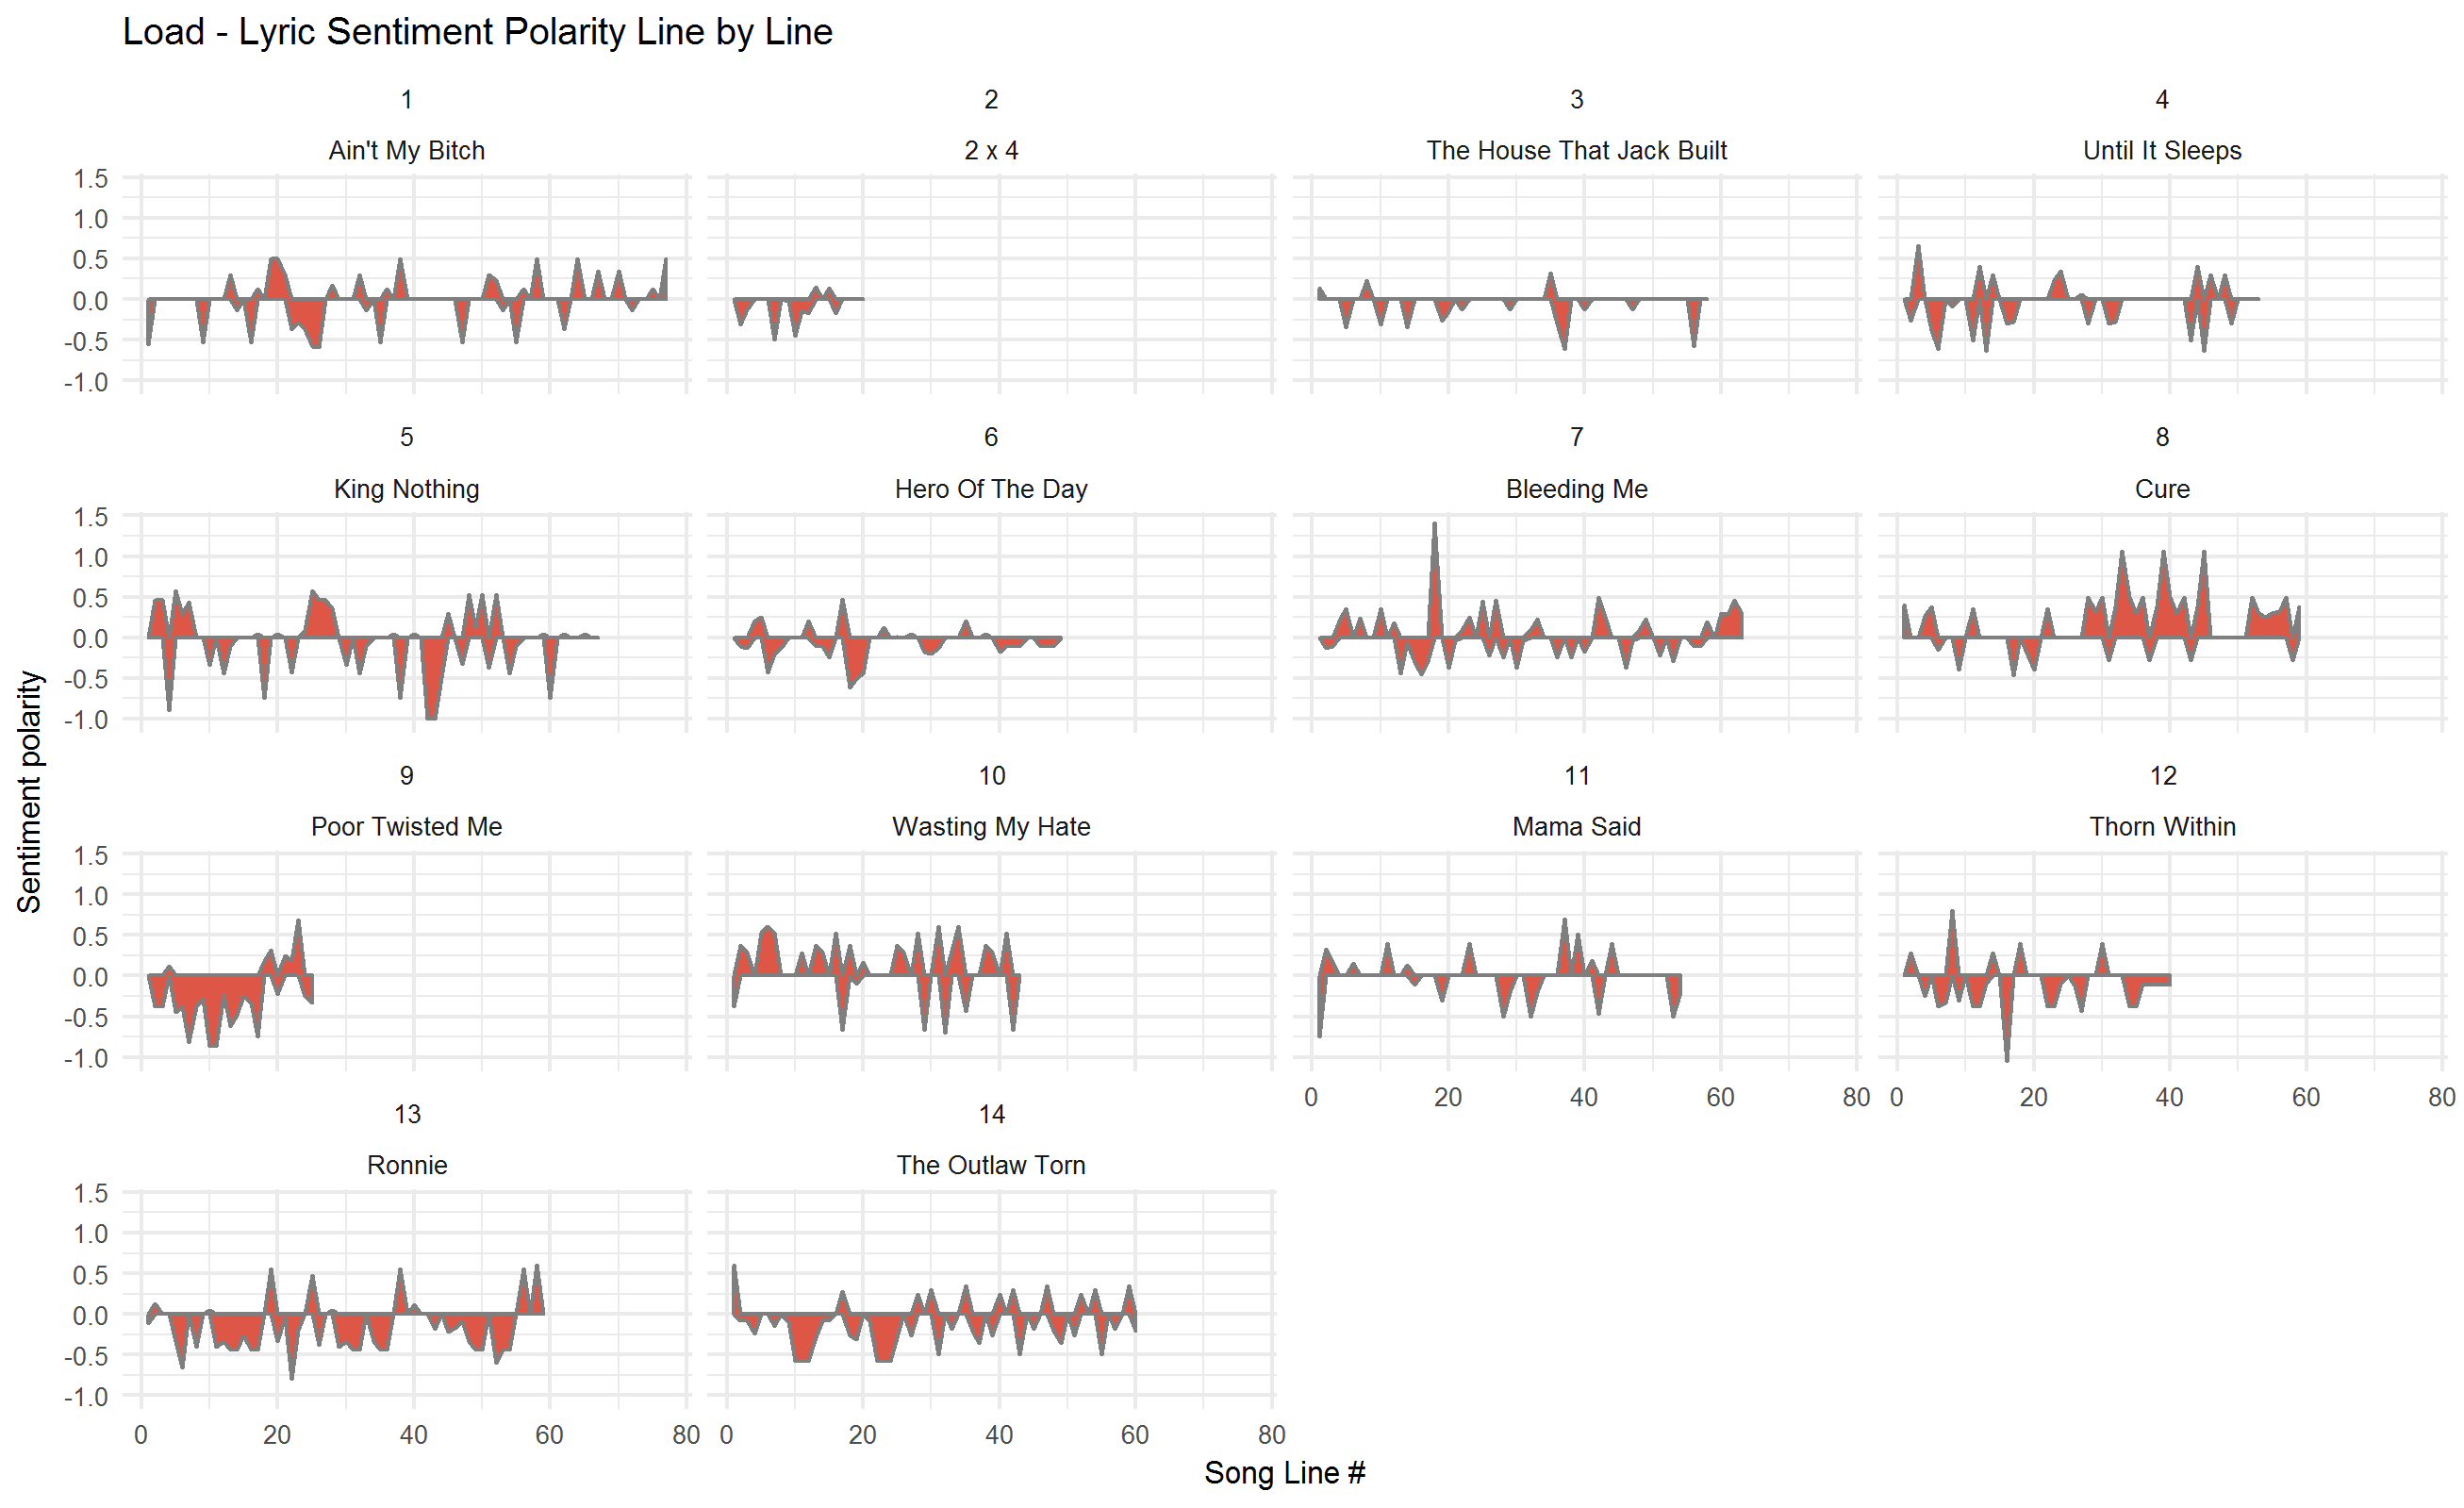 2018-02-01-Sentiment-by-track-Load.png